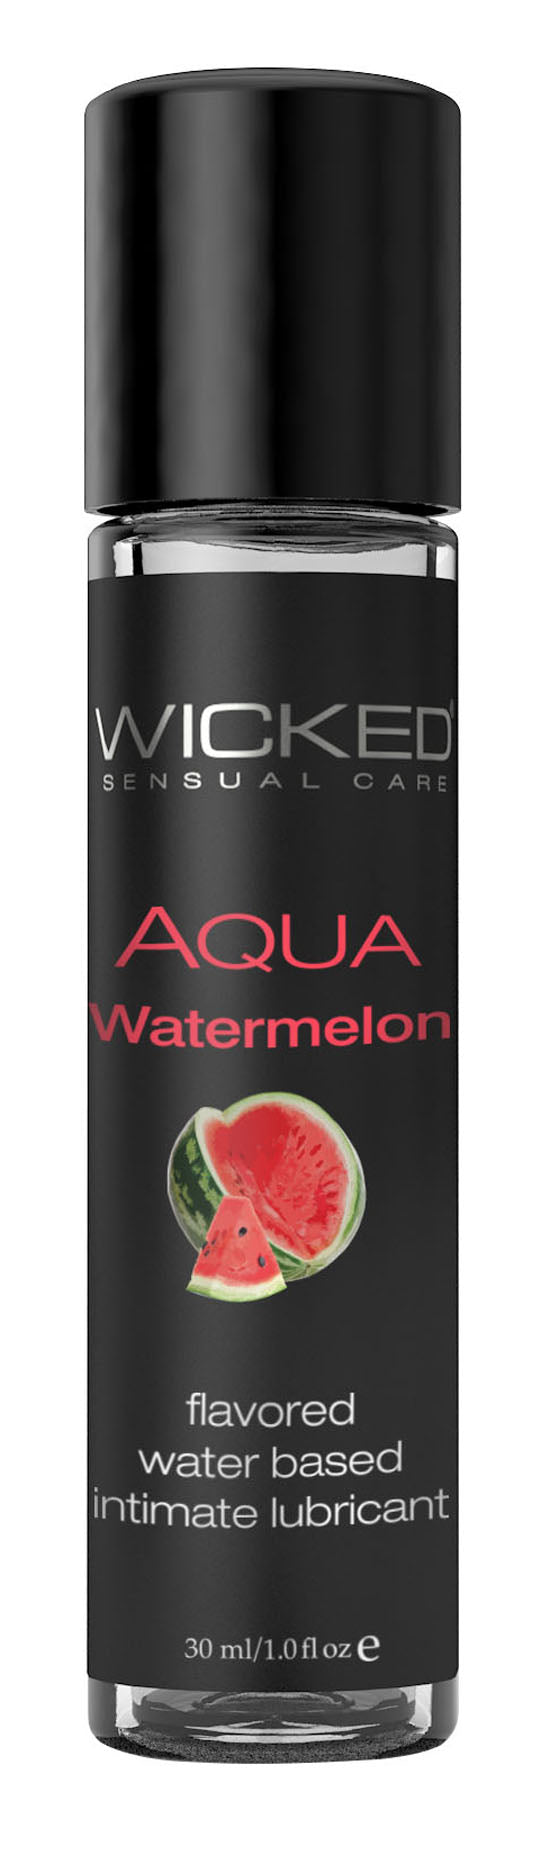 Aqua Watermelon Water-Based Lubricant 1 Oz - My sheree and More